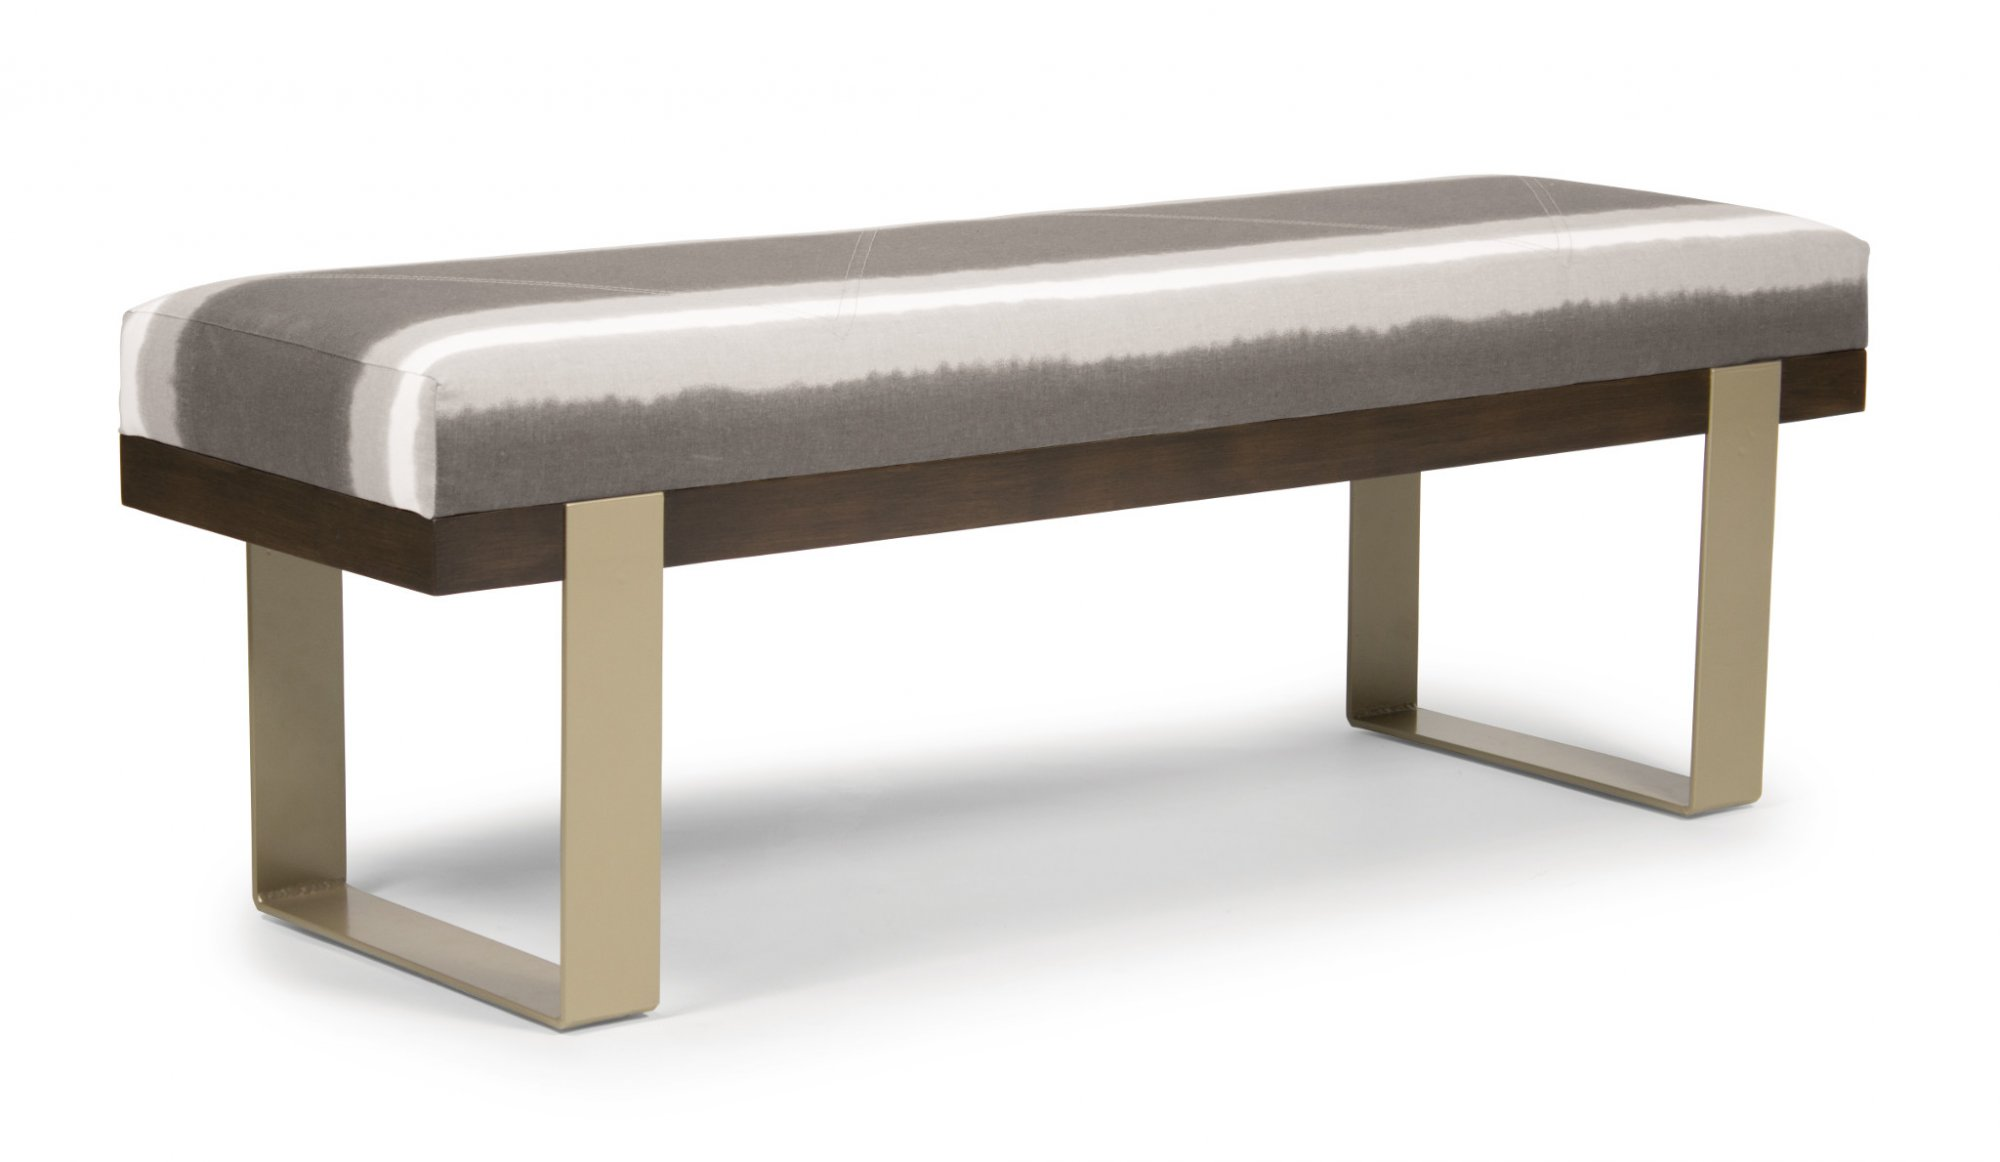 Model: CA826-21 | Flexsteel Edge  Bench